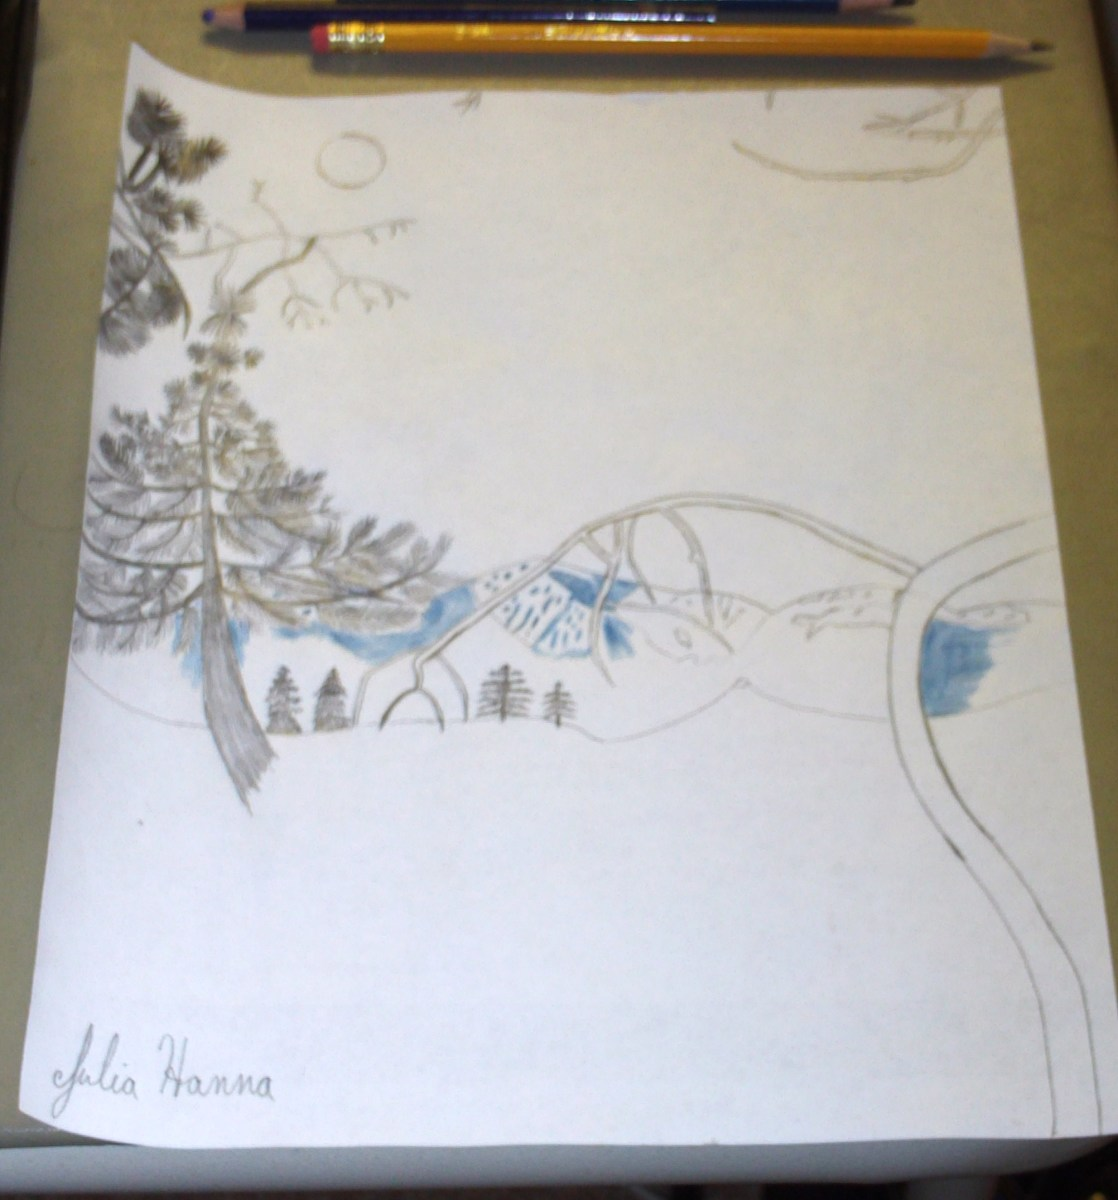 I use a violet-blue colored pencil to begin shading in the peaks of Mount Baldy.